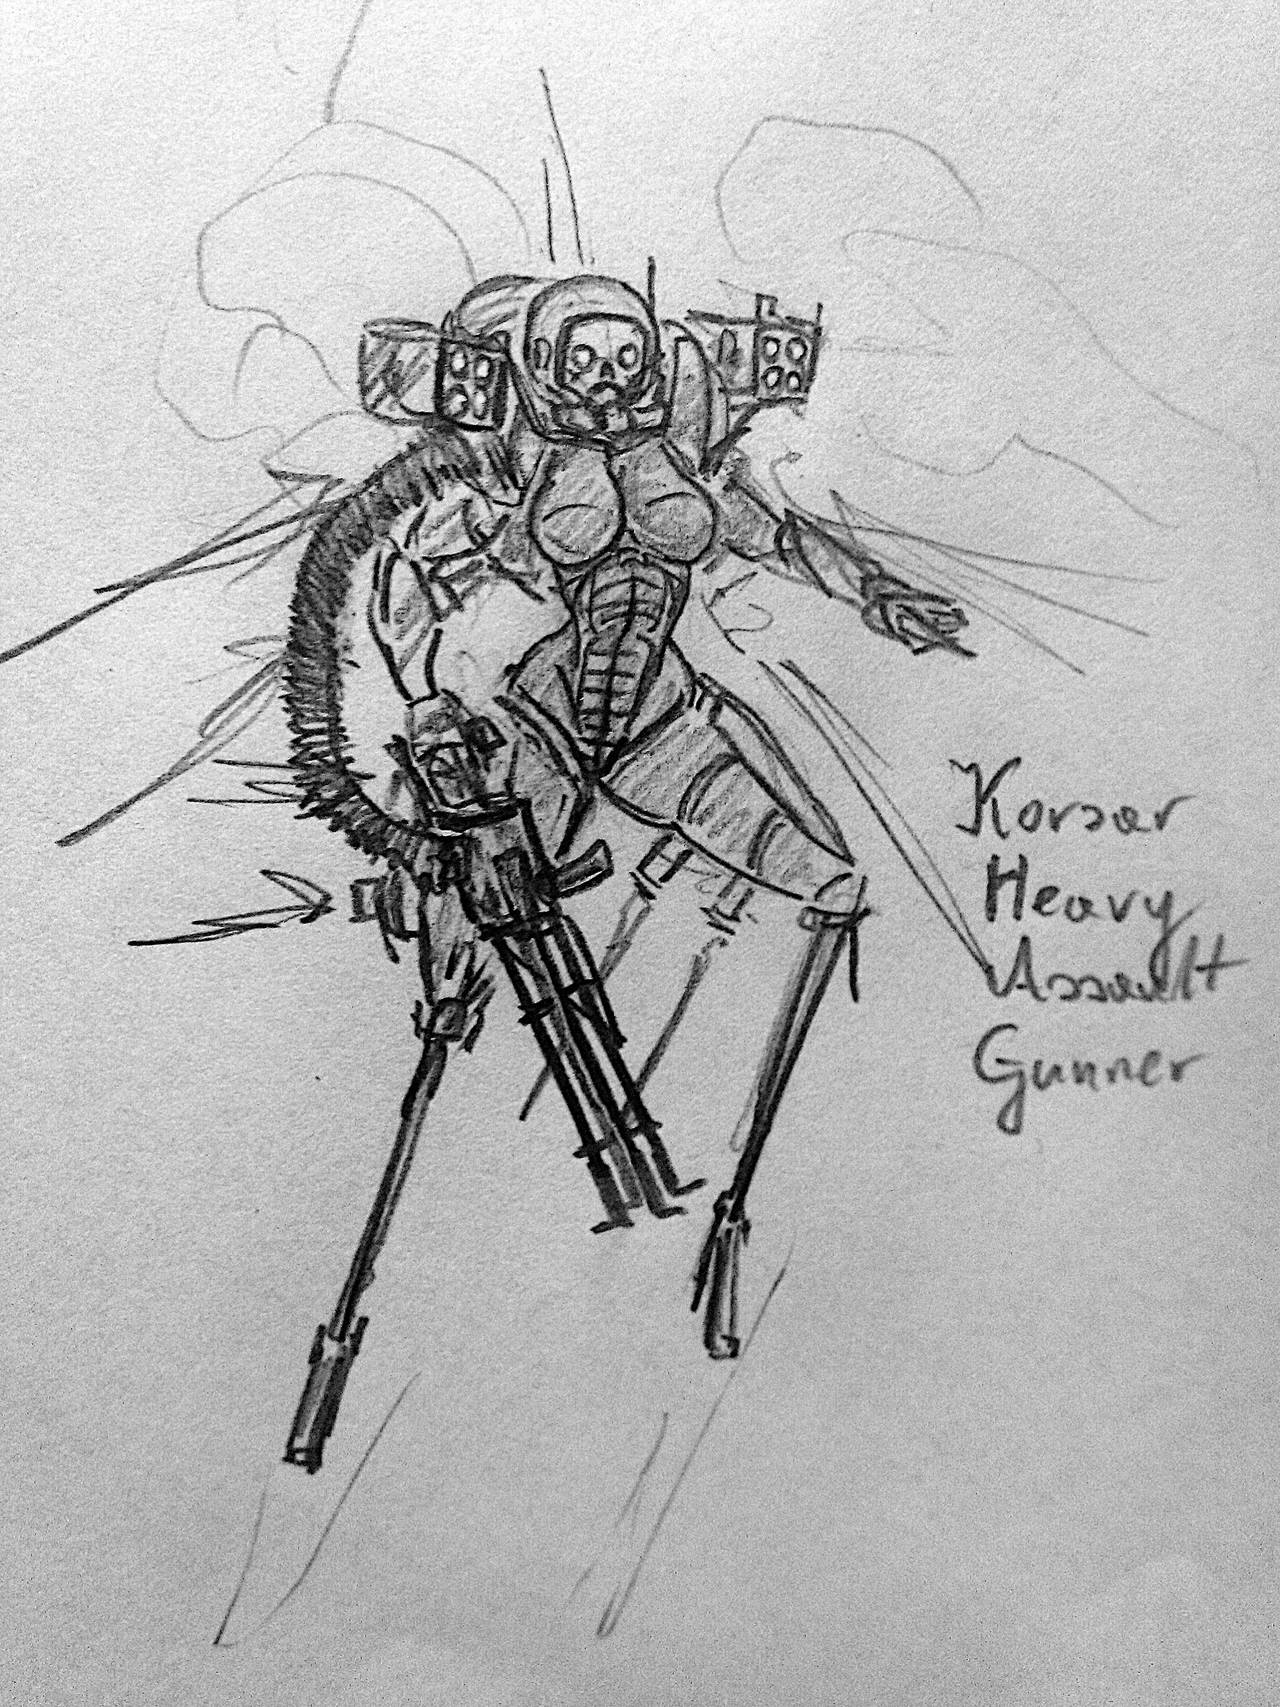 korsar_heavy_assault_gunner_2_0_by_hugin